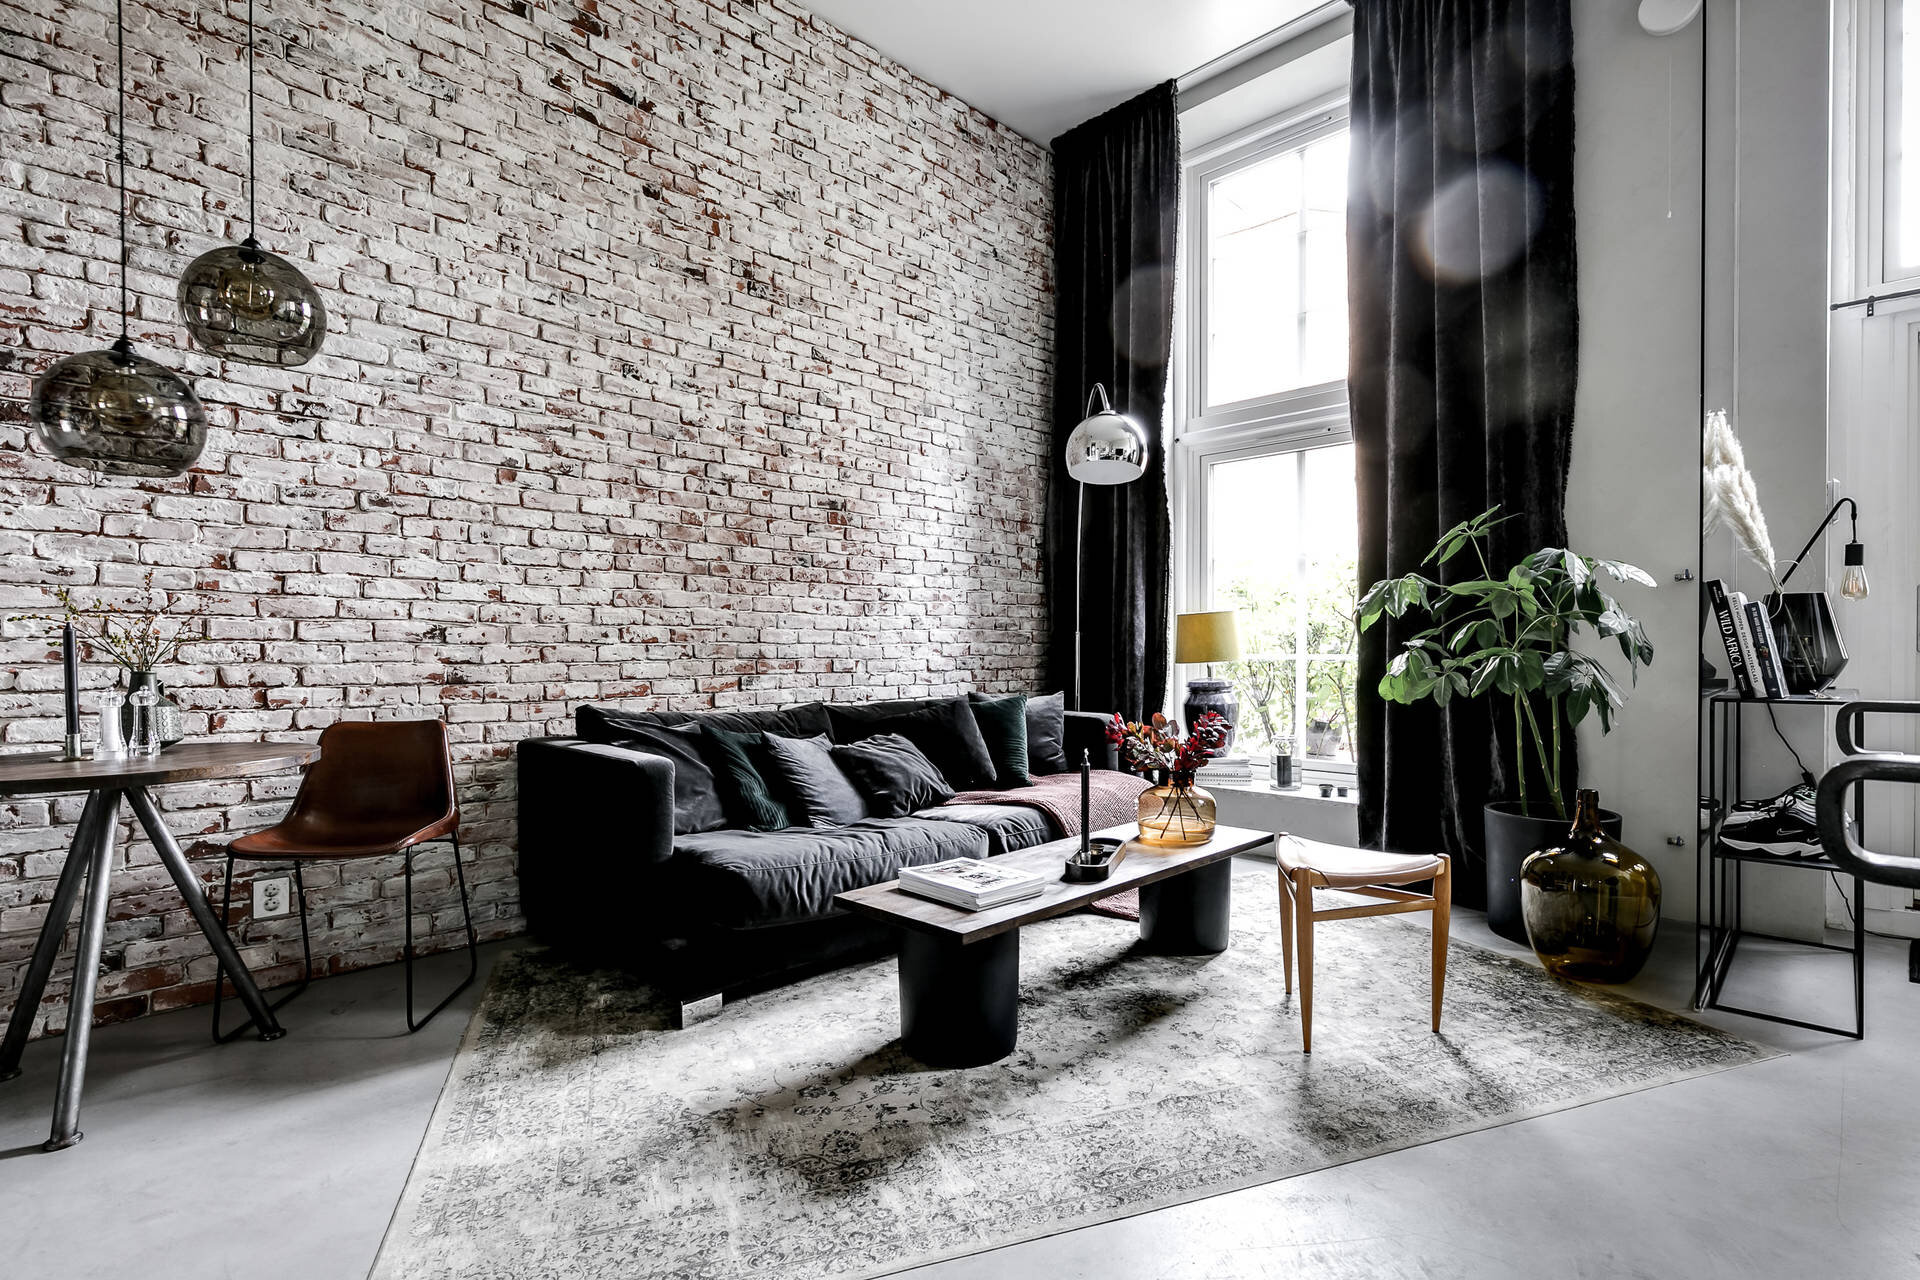 An Industrial Scandinavian Apartment With Exposed Brick Wall The Nordroom